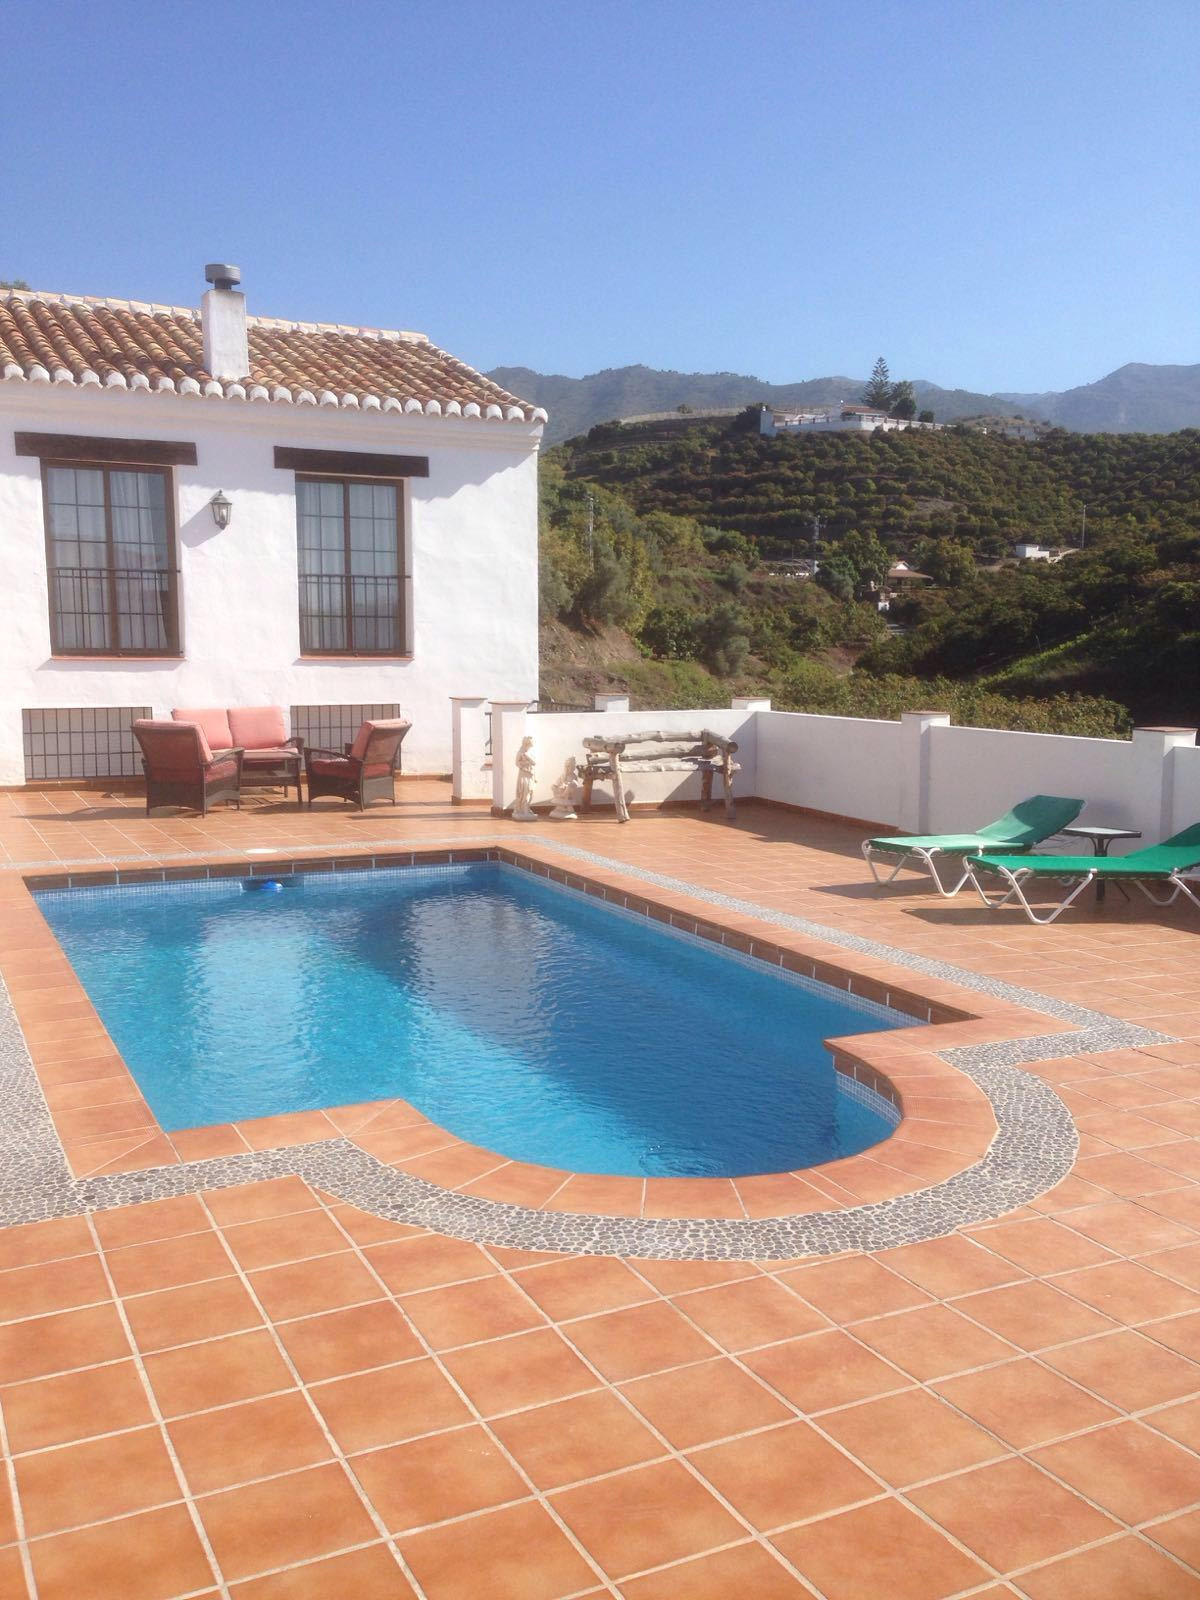 This villa would make the perfect holiday home or rental giving you an investment or a peacefully ha, Spain